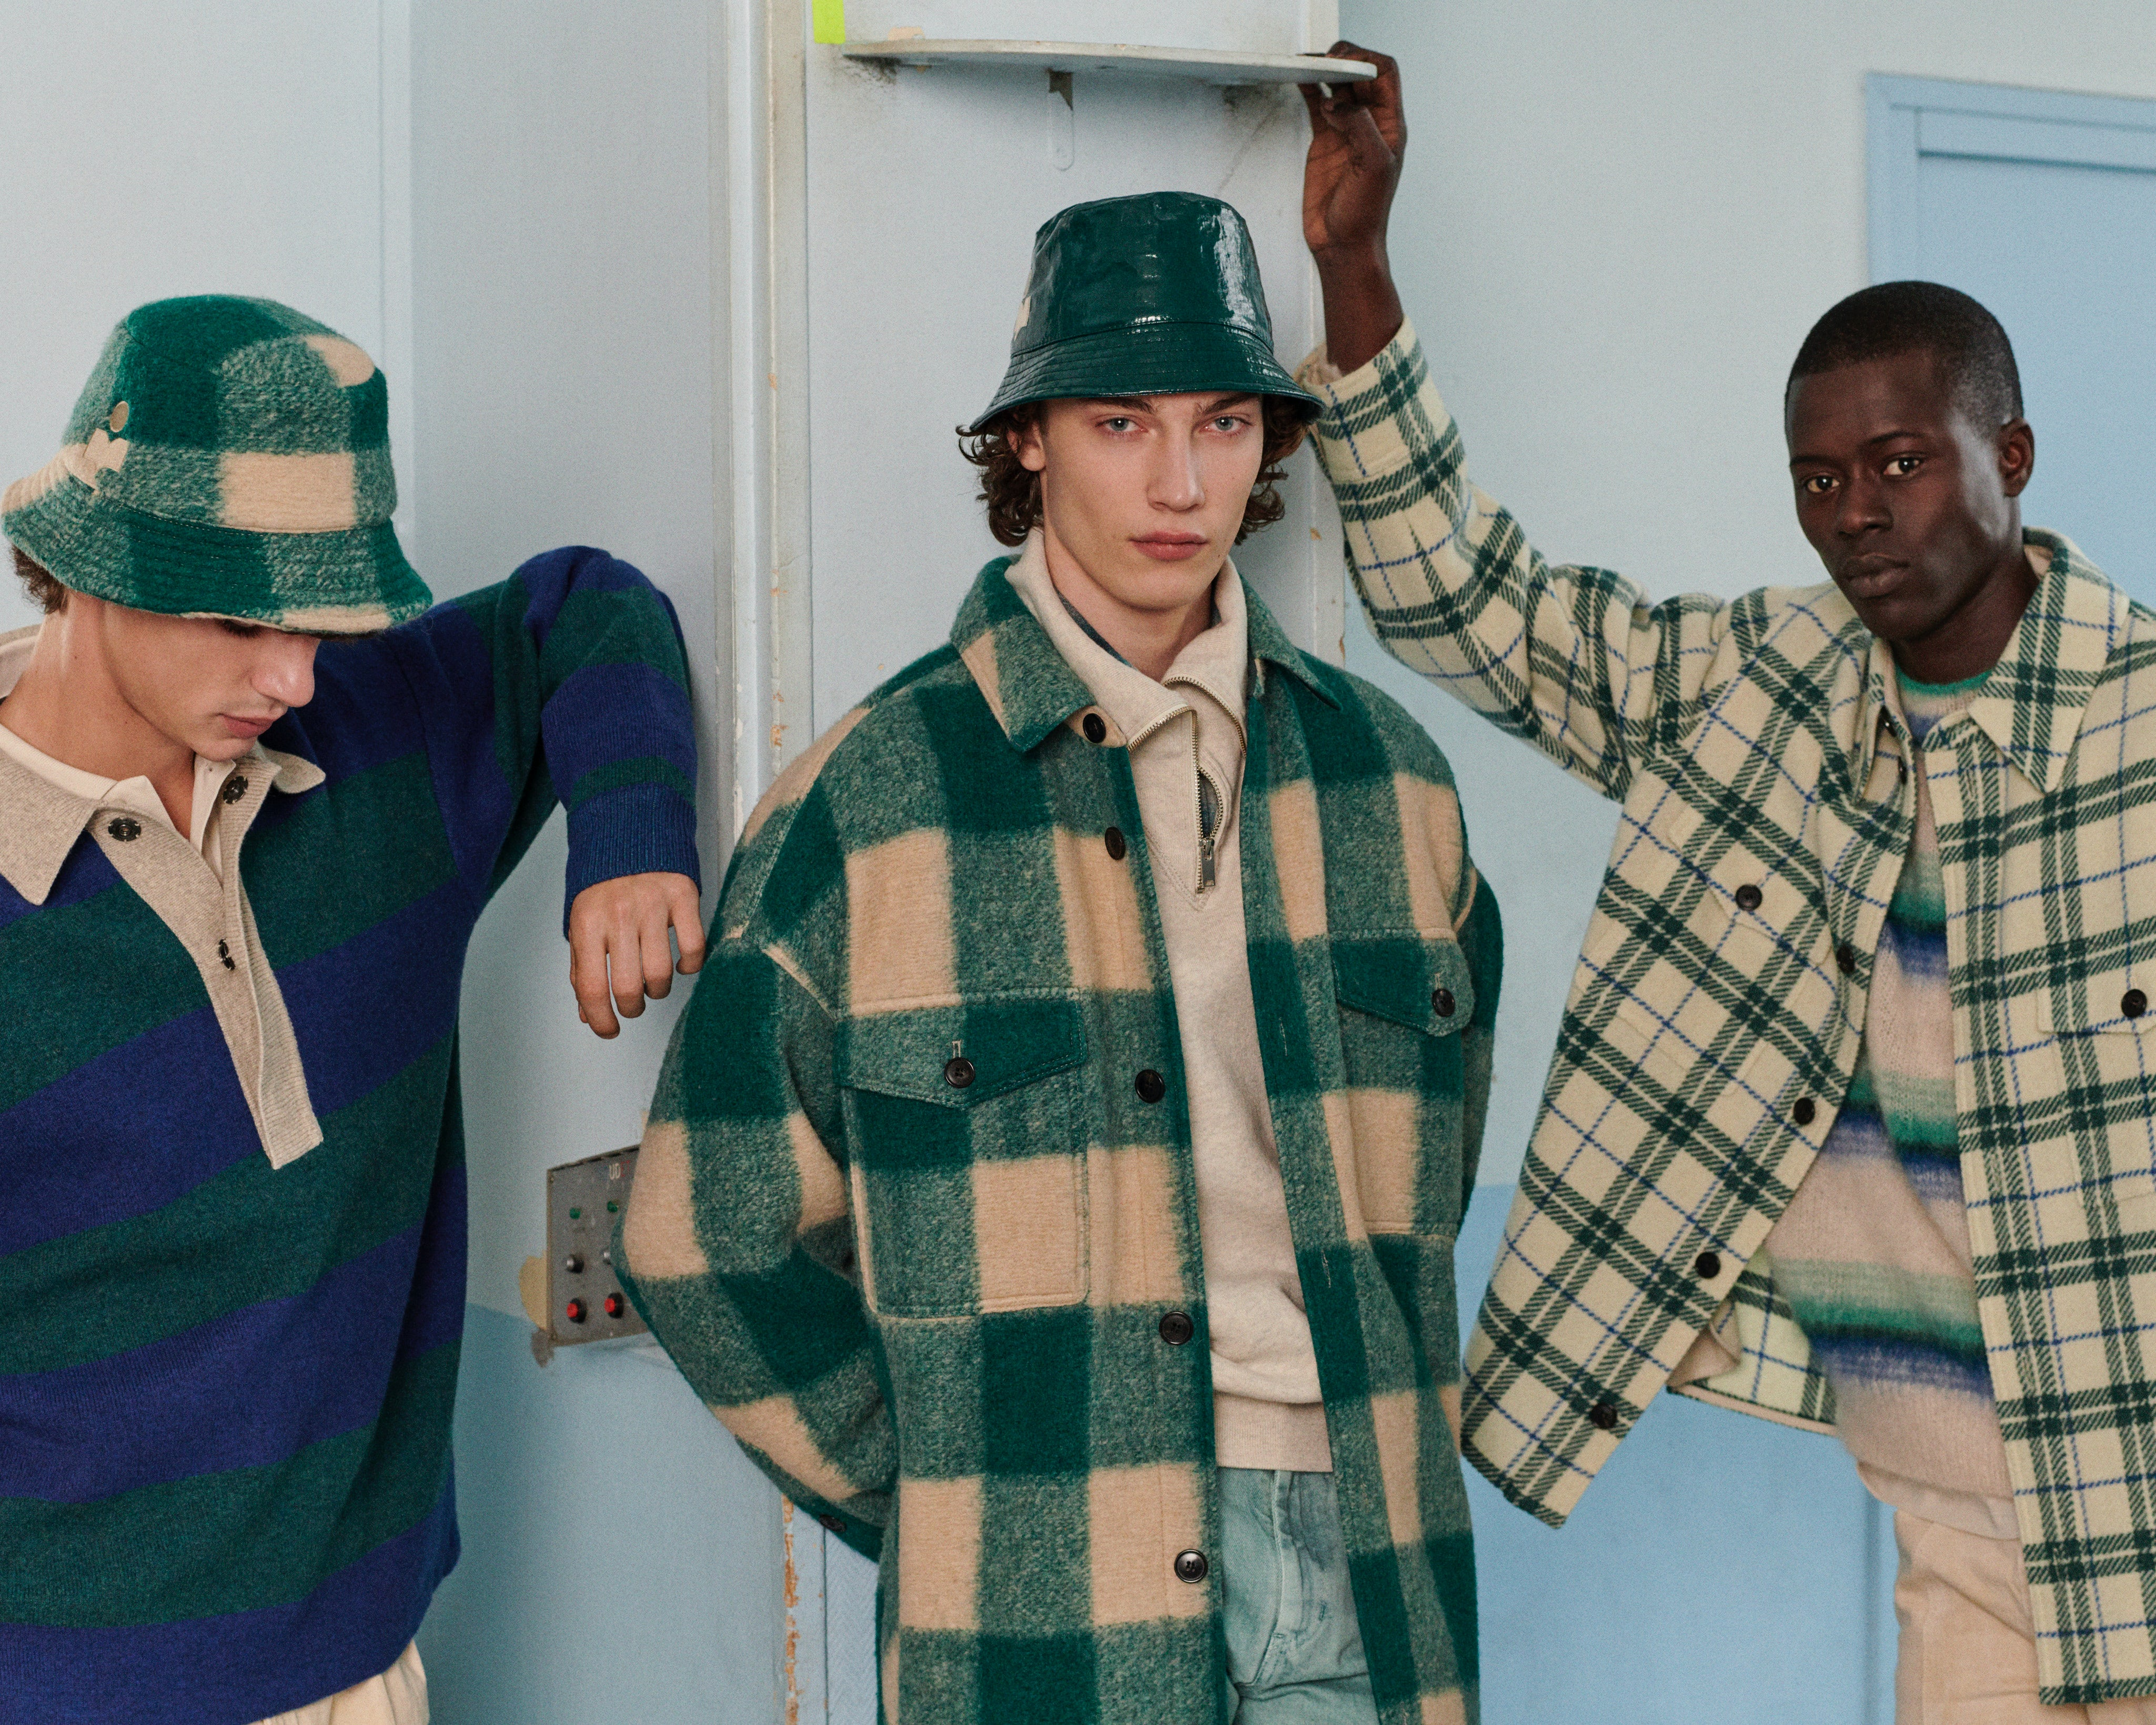 Isabel Marant showed its latest menswear collection in a video released during January's Paris Fashion Week.